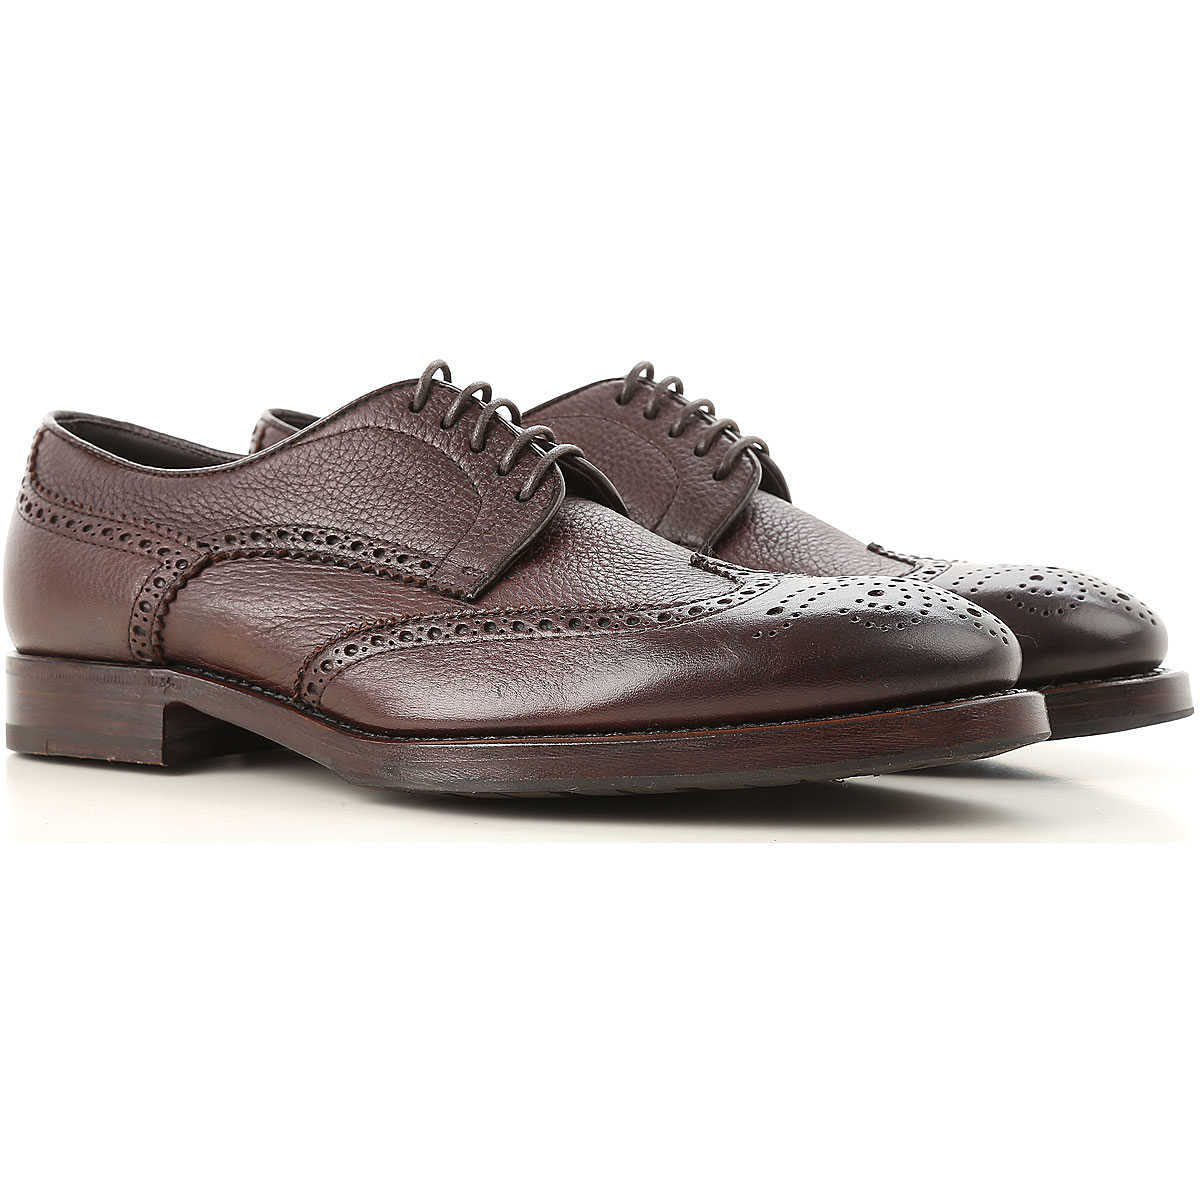 Henderson Lace Up Shoes for Men Oxfords Derbies and Brogues On Sale DK - GOOFASH - Mens FORMAL SHOES